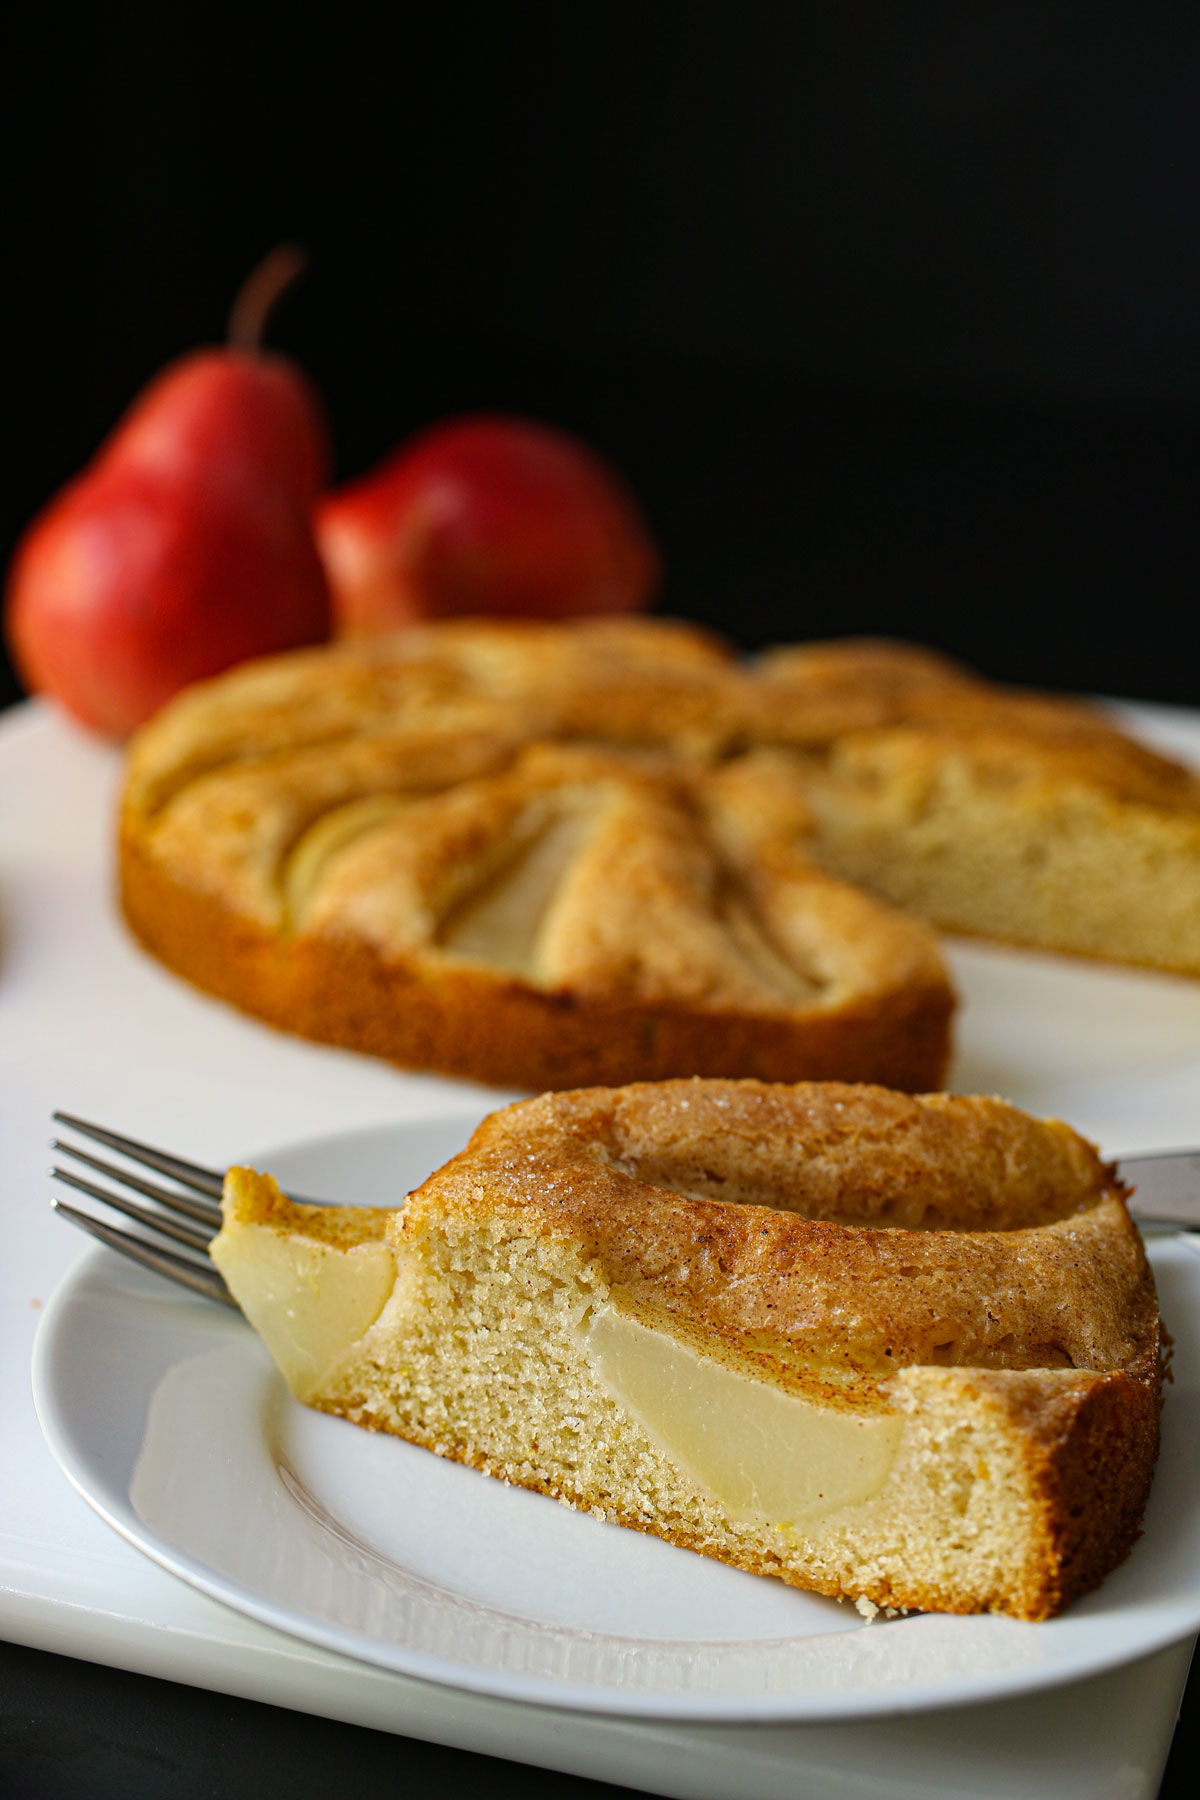 pear cake served on dessert plate next to cake platter and two red pears.